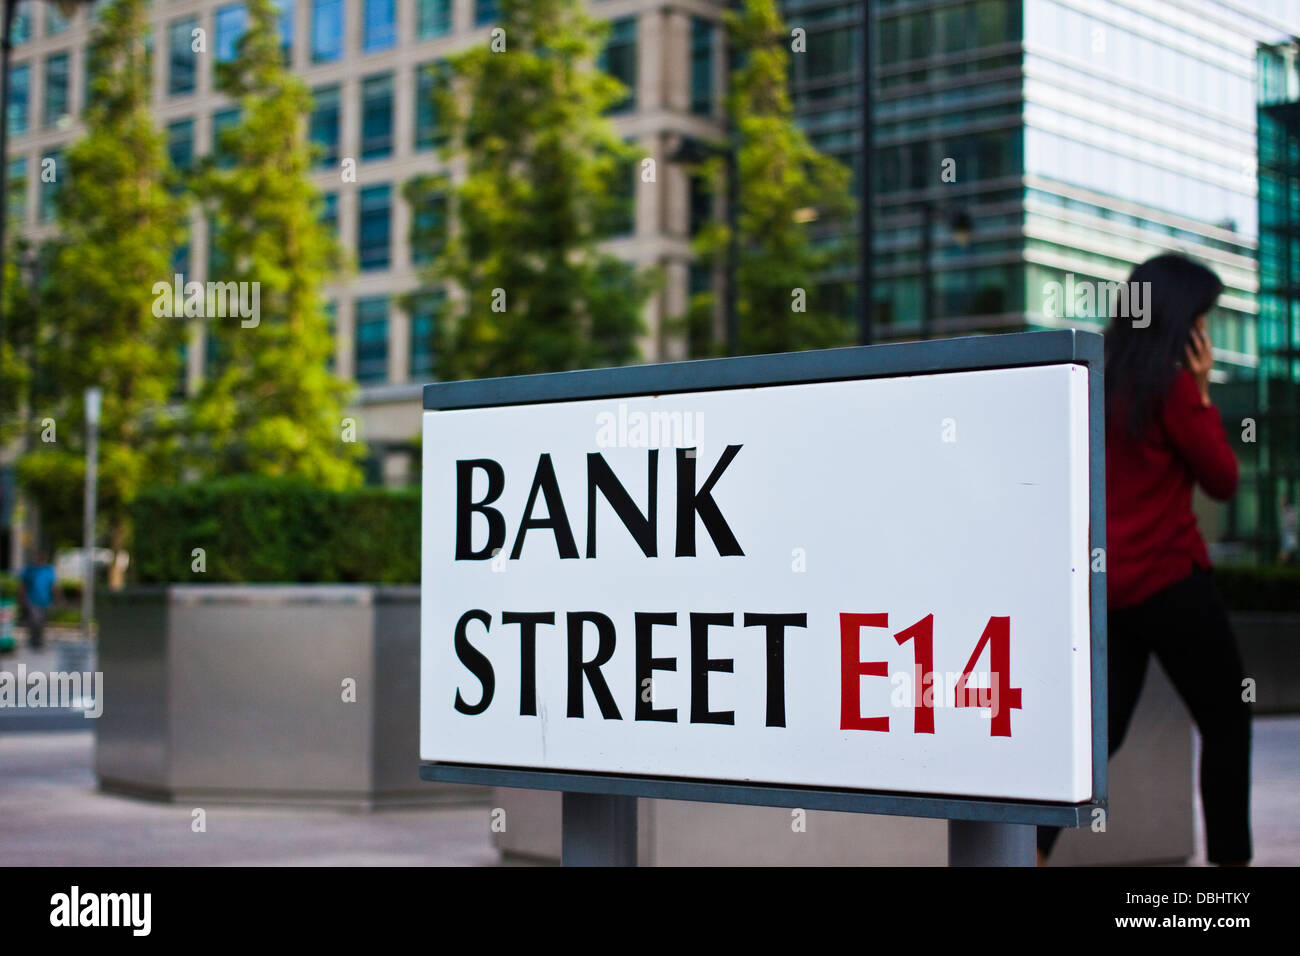 Bank street E14 road sign at Canary Wharf, Docklands London - Stock Image